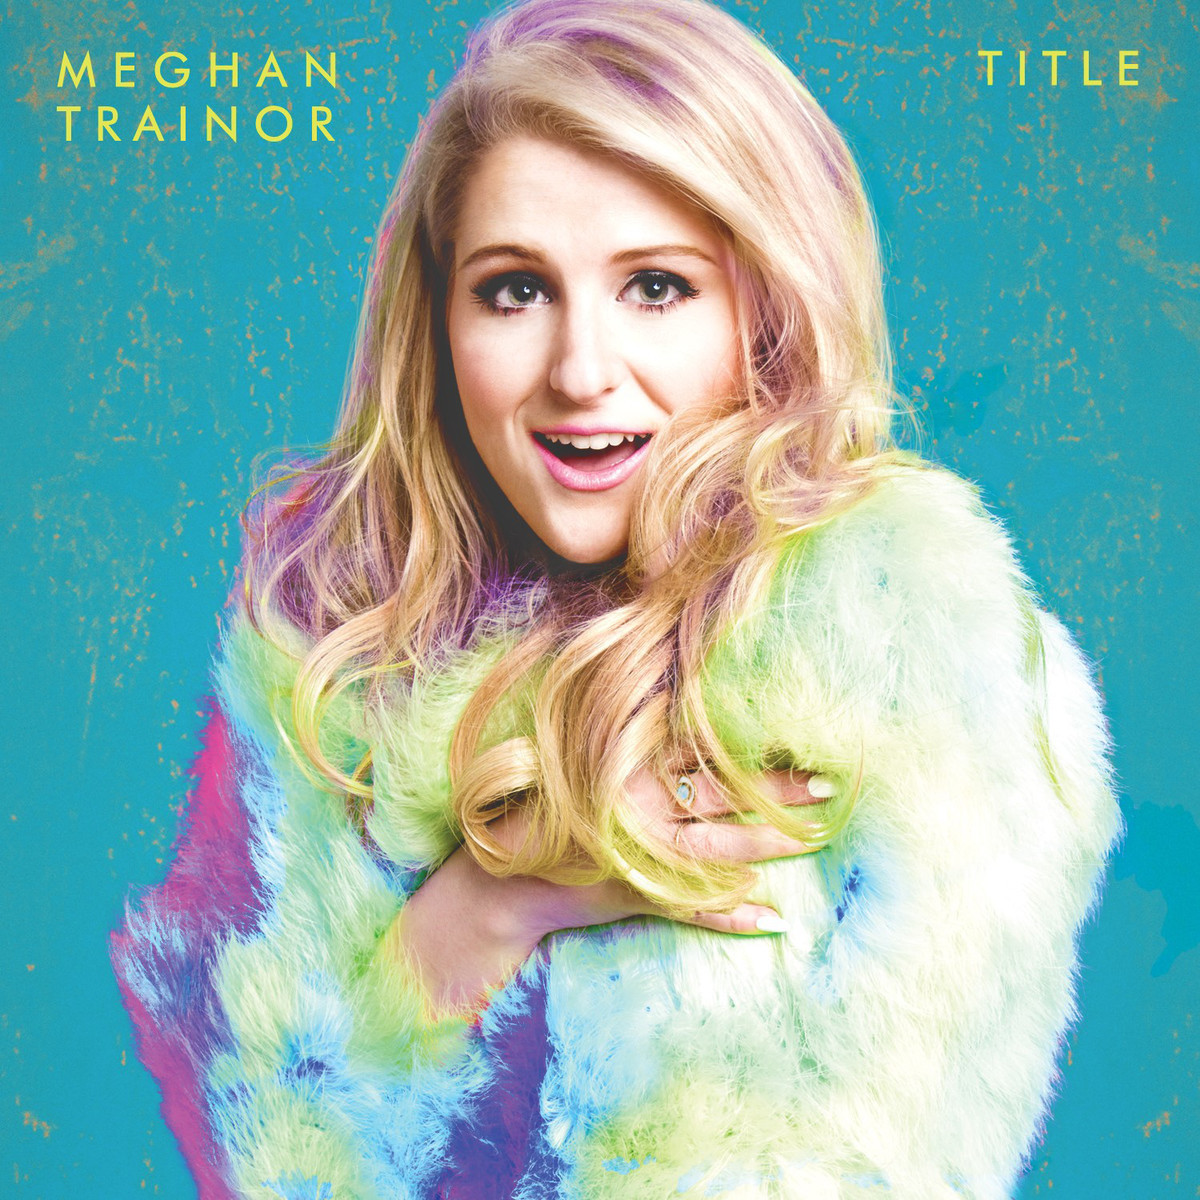 Title by Meghan Trainor image